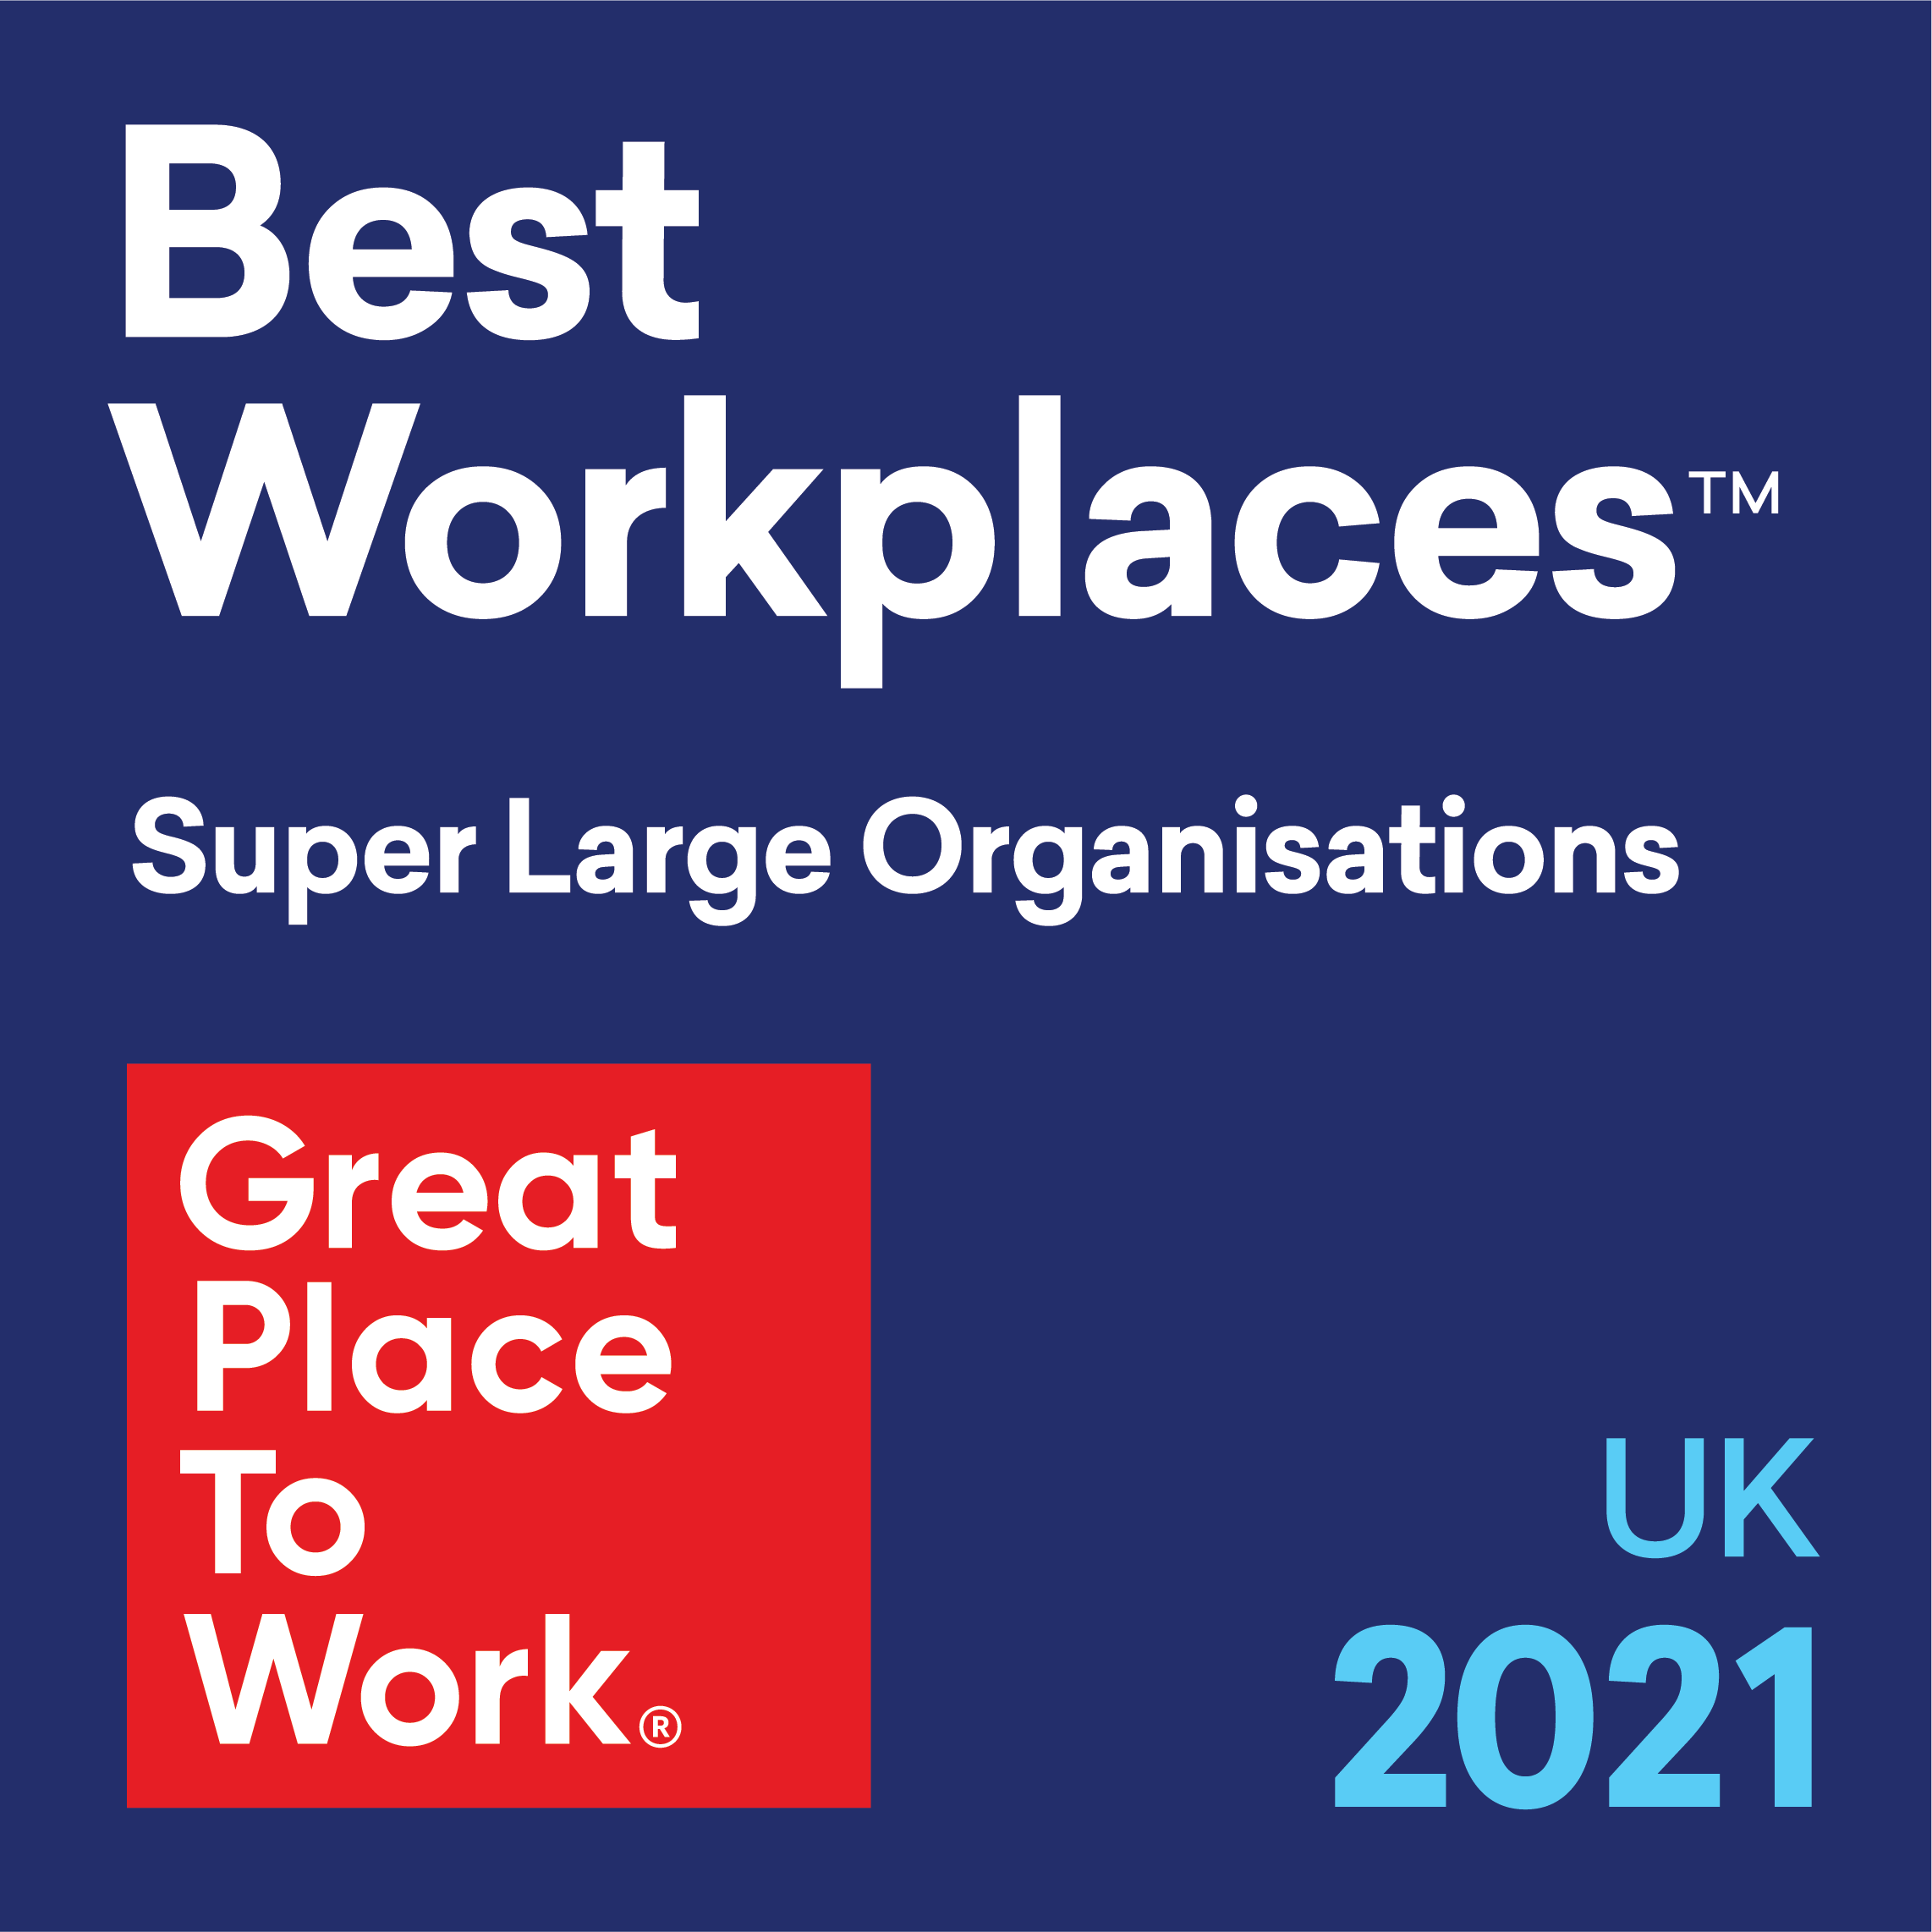 Best Workplaces UK CMYK 2021 SUPER LARGE